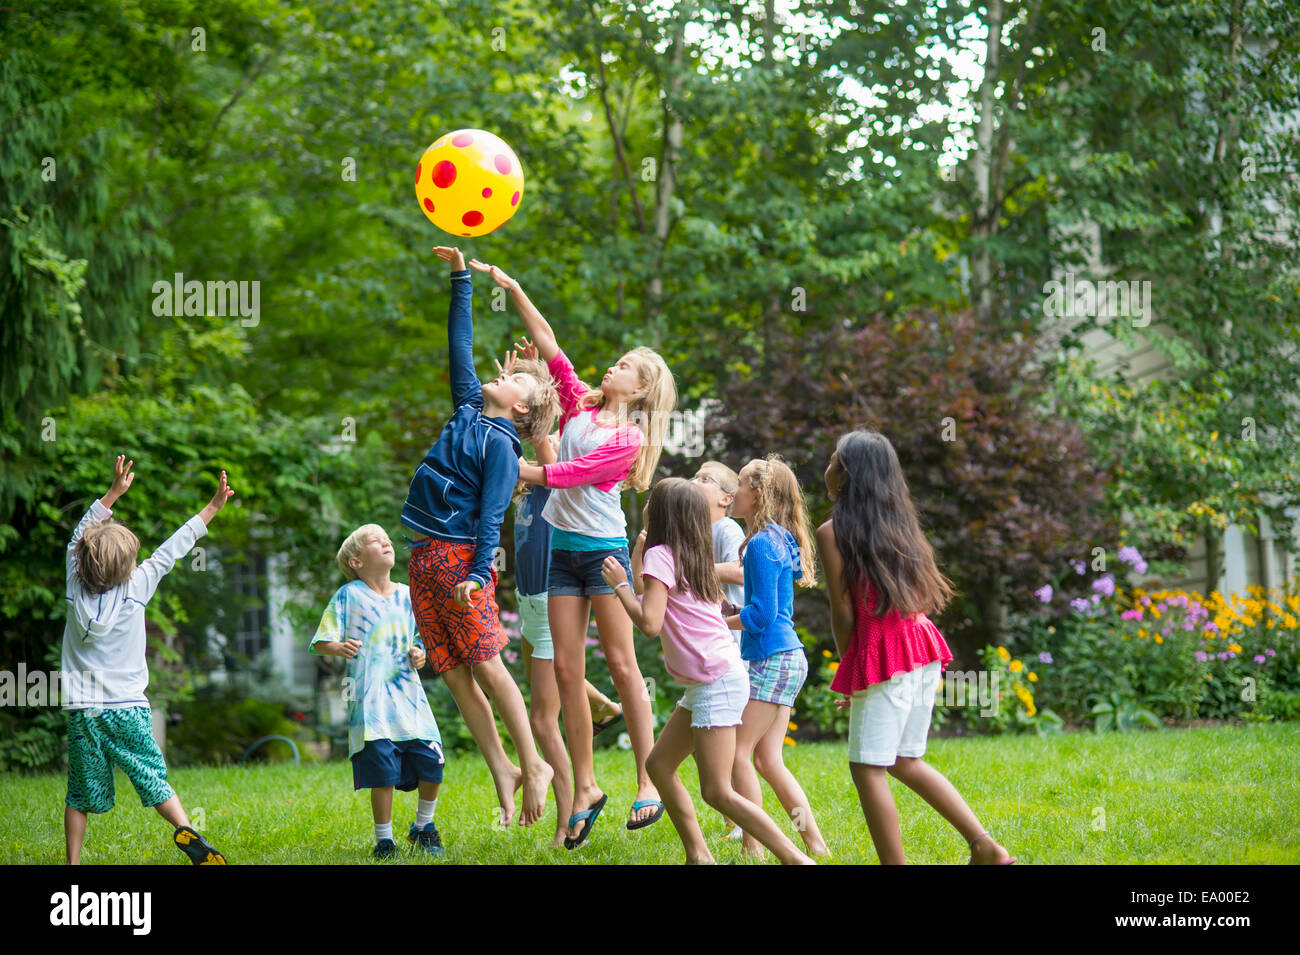 children playing ball game  garden stock photo